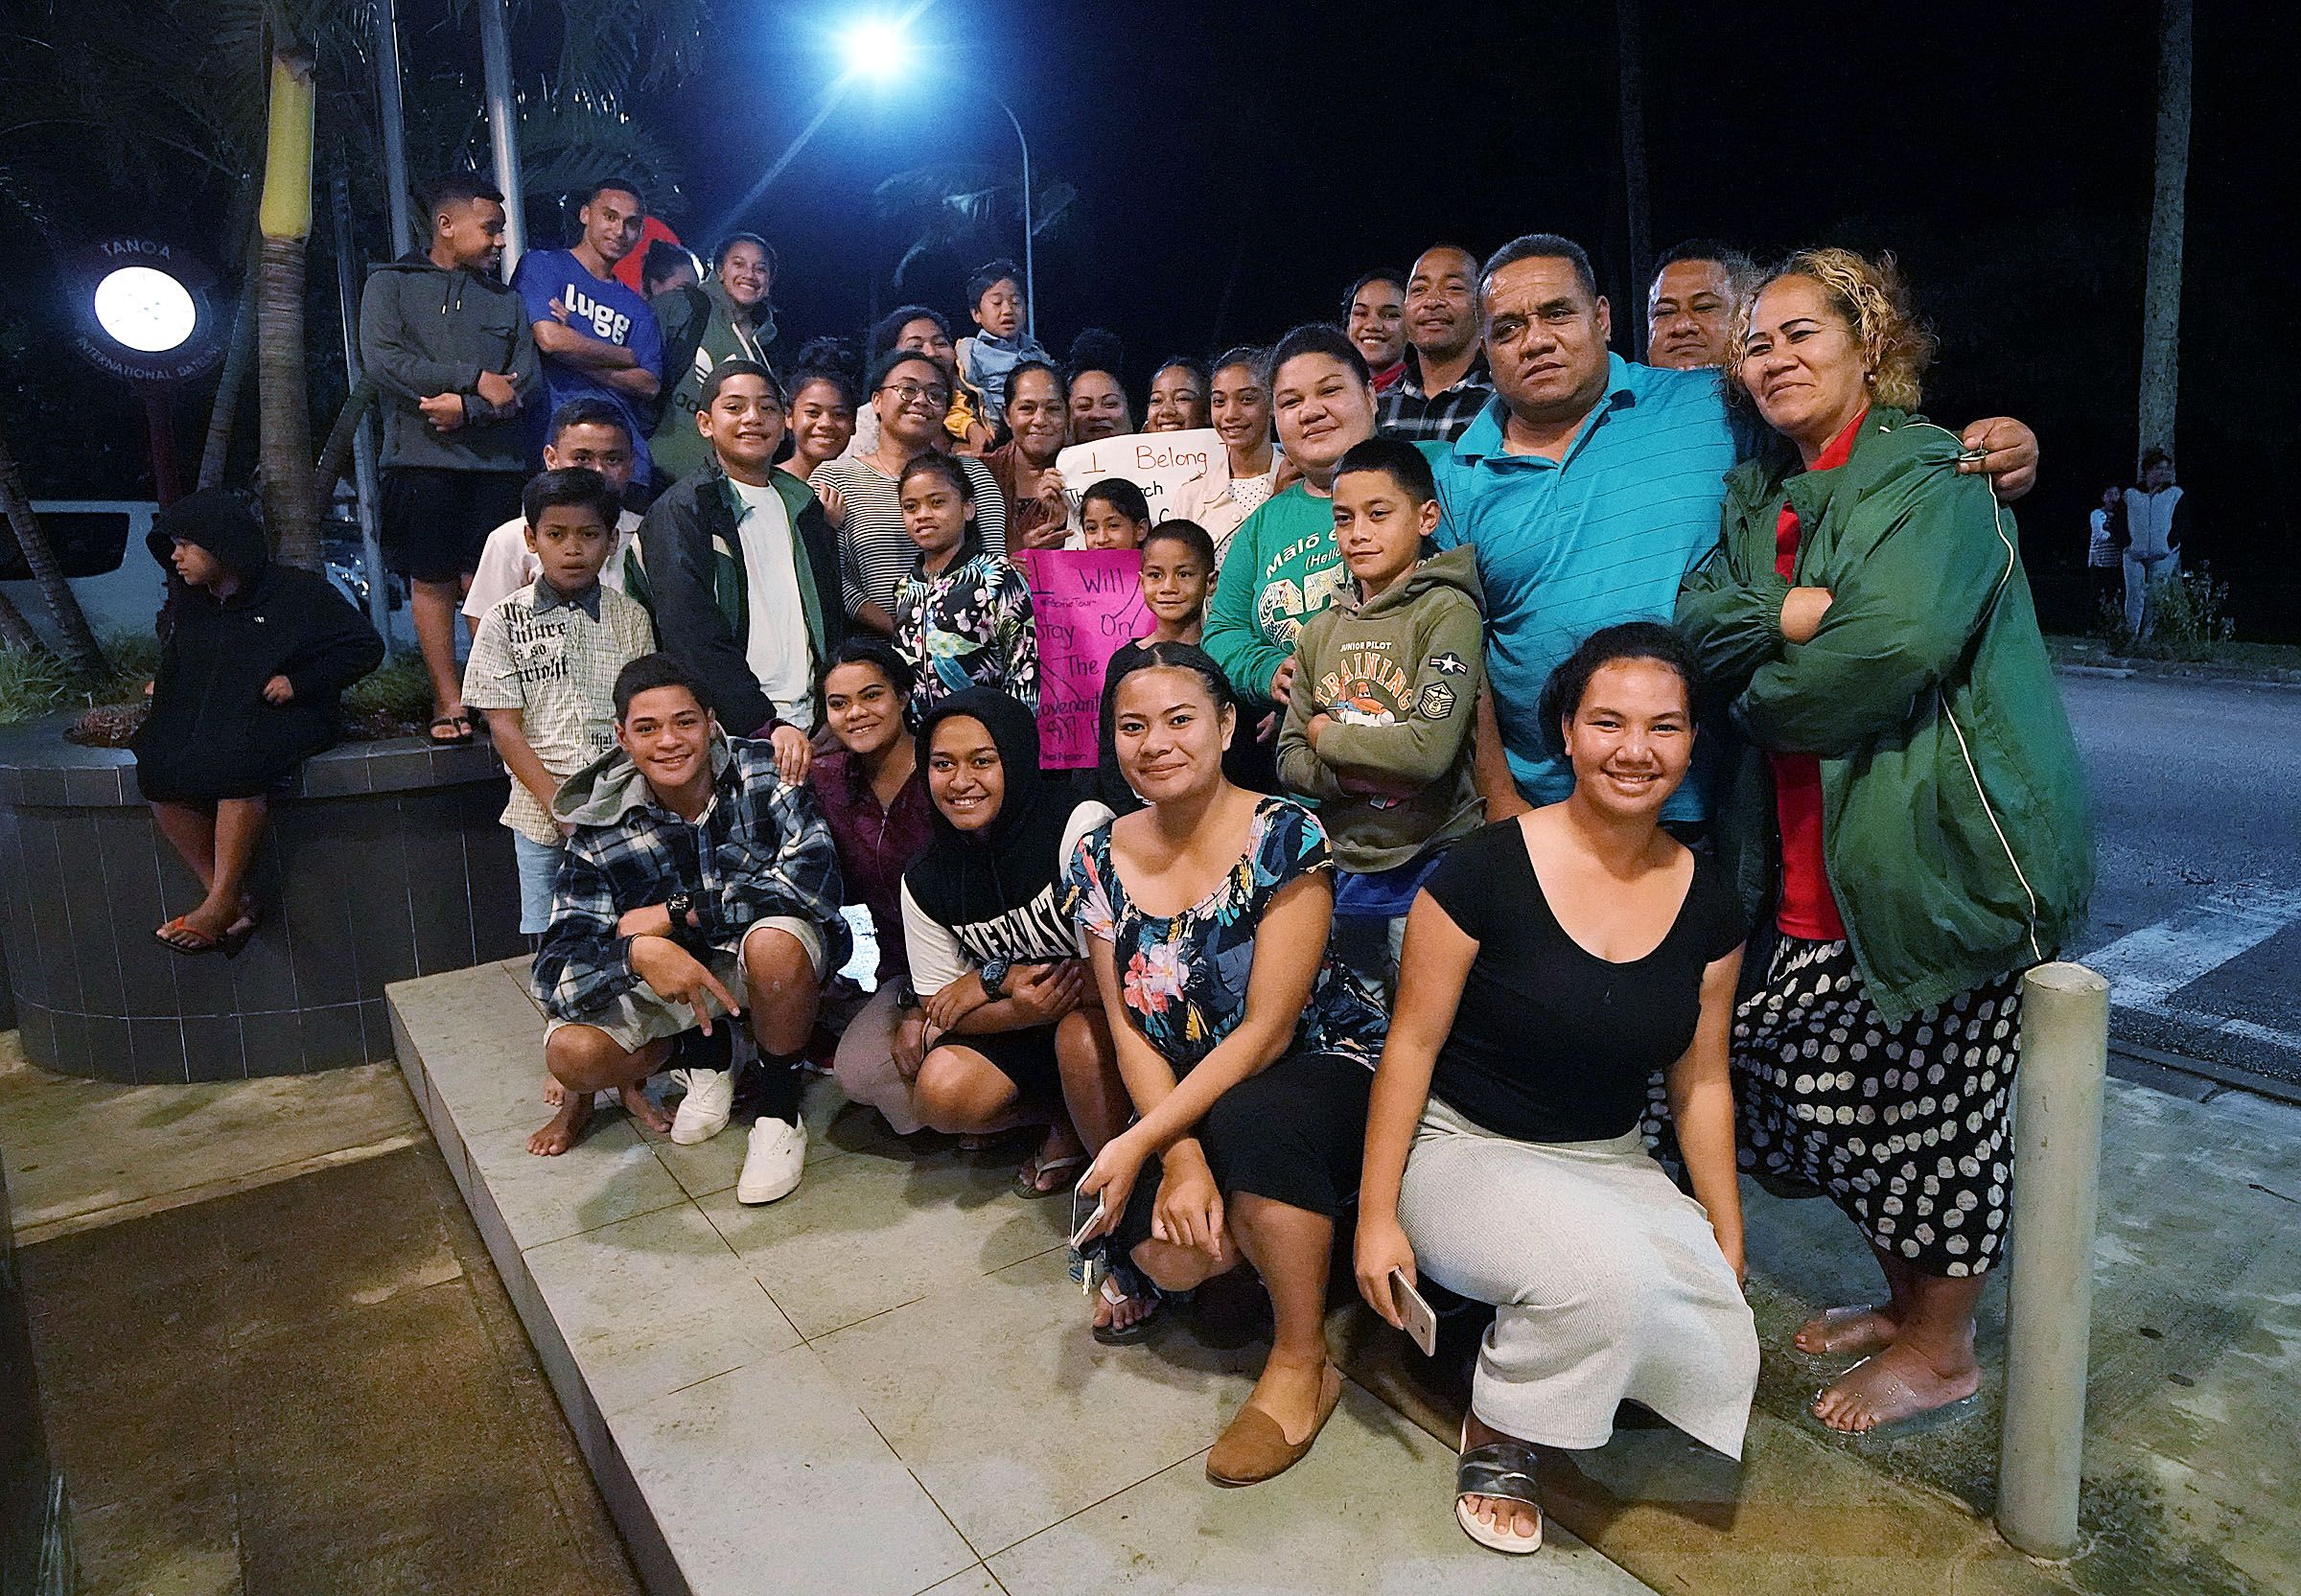 A group waits outside the hotel where President Russell M. Nelson of The Church of Jesus Christ of Latter-day Saints, and his wife, Sister Wendy Nelson, are staying in Nuku'alofa, Tonga, on Wednesday, May 22, 2019.